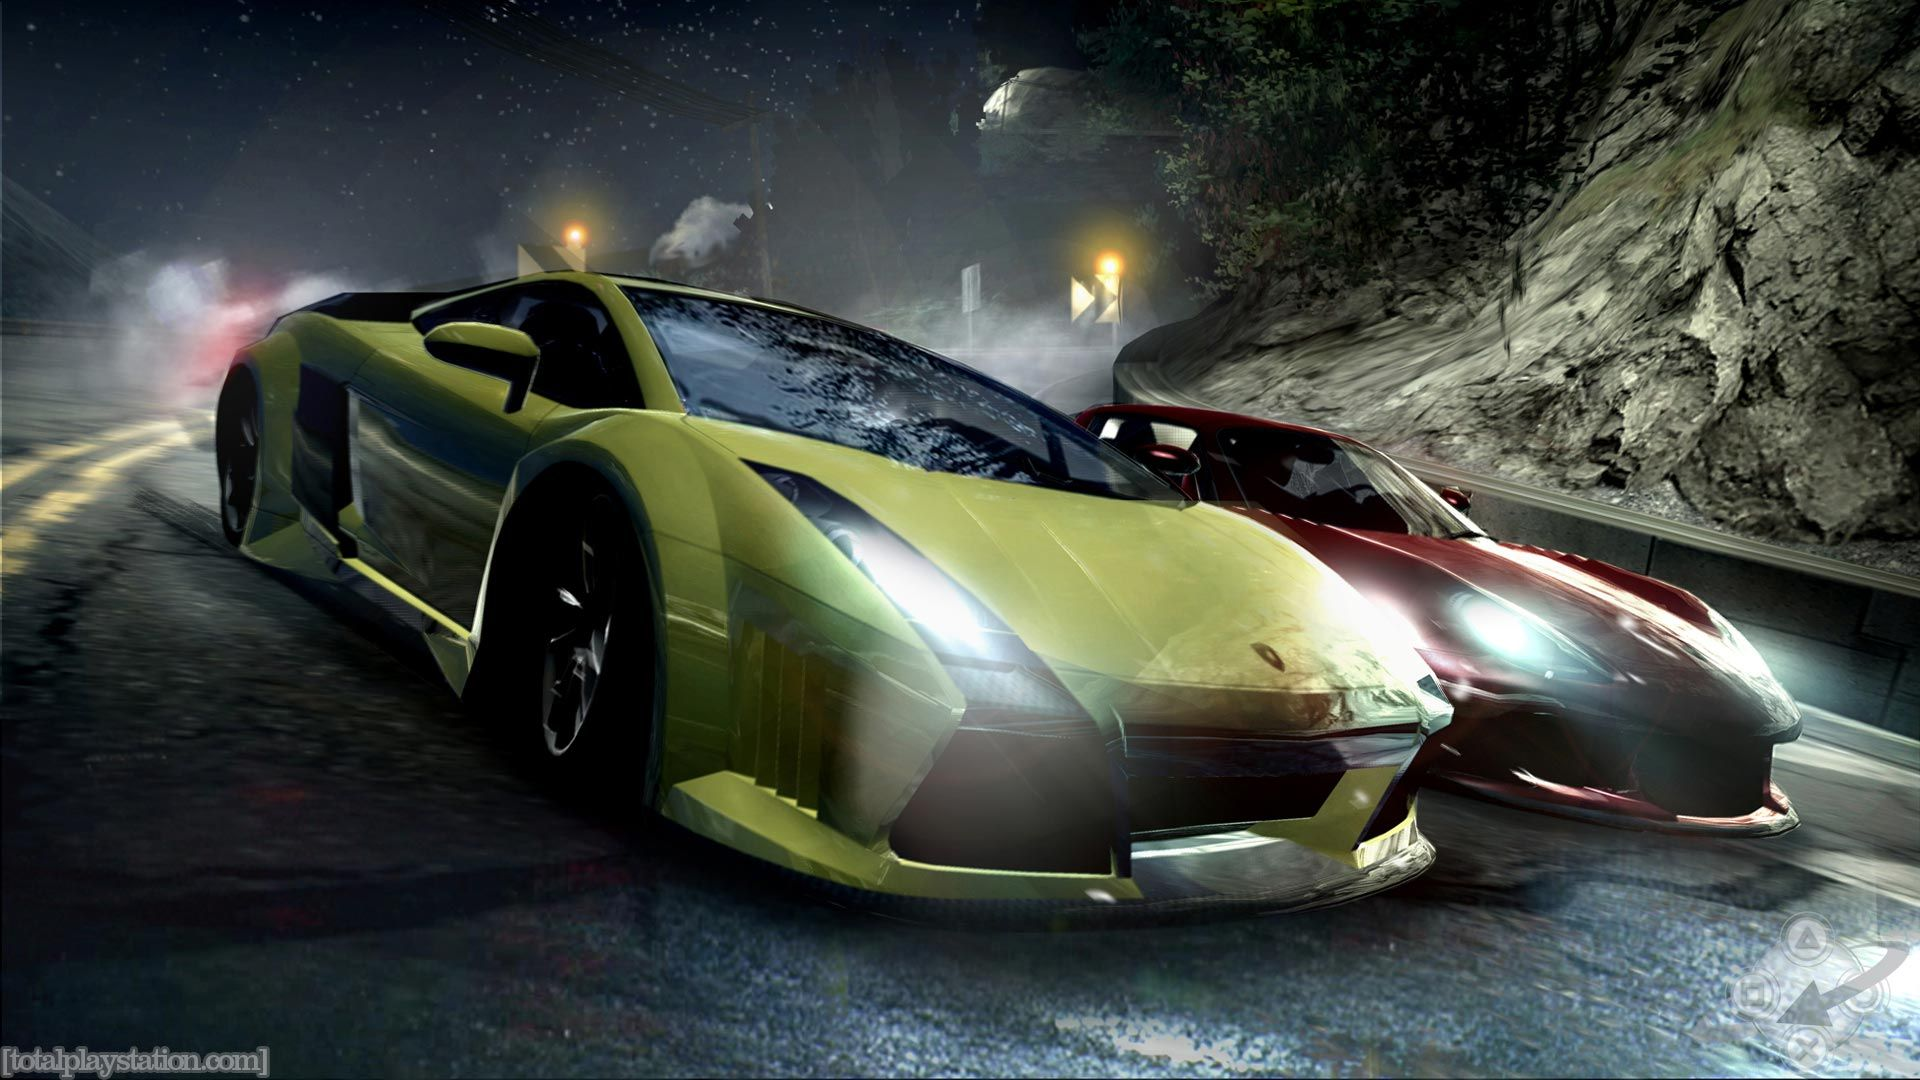 Need For Speed Underground HD Wallpapers Backgrounds 25601440 1920x1080